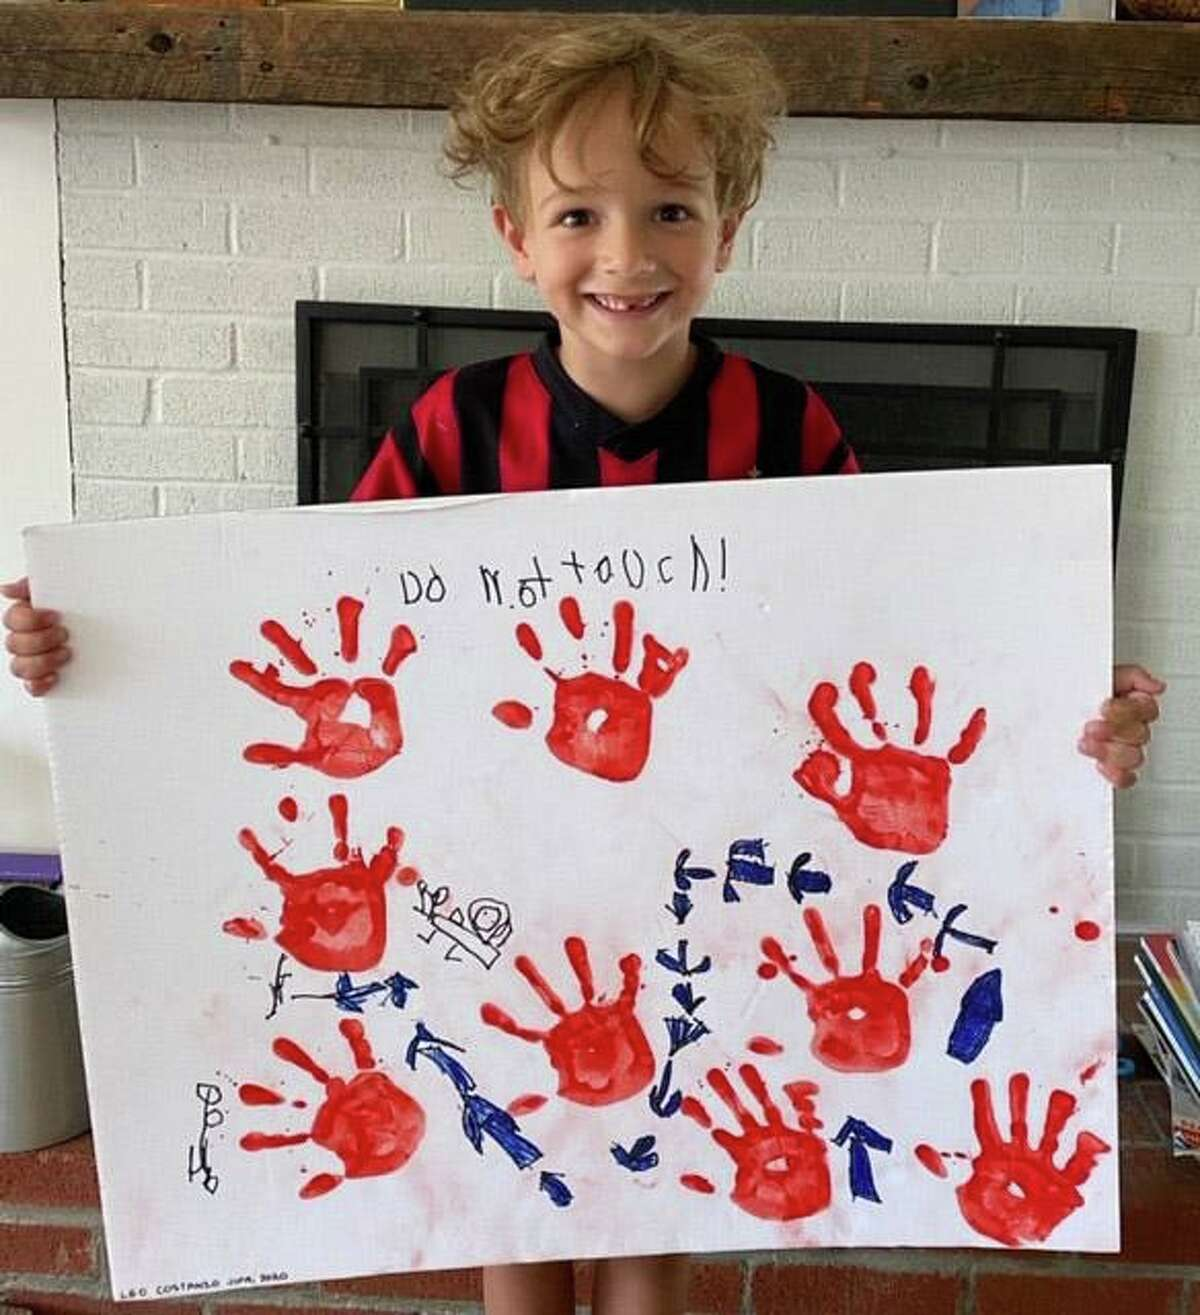 Kindergartner Leonardo Costanzo took third place in the K-4 category in the Bruce Museum's new Junior Art Competition for his work, 'Do Not Touch.'